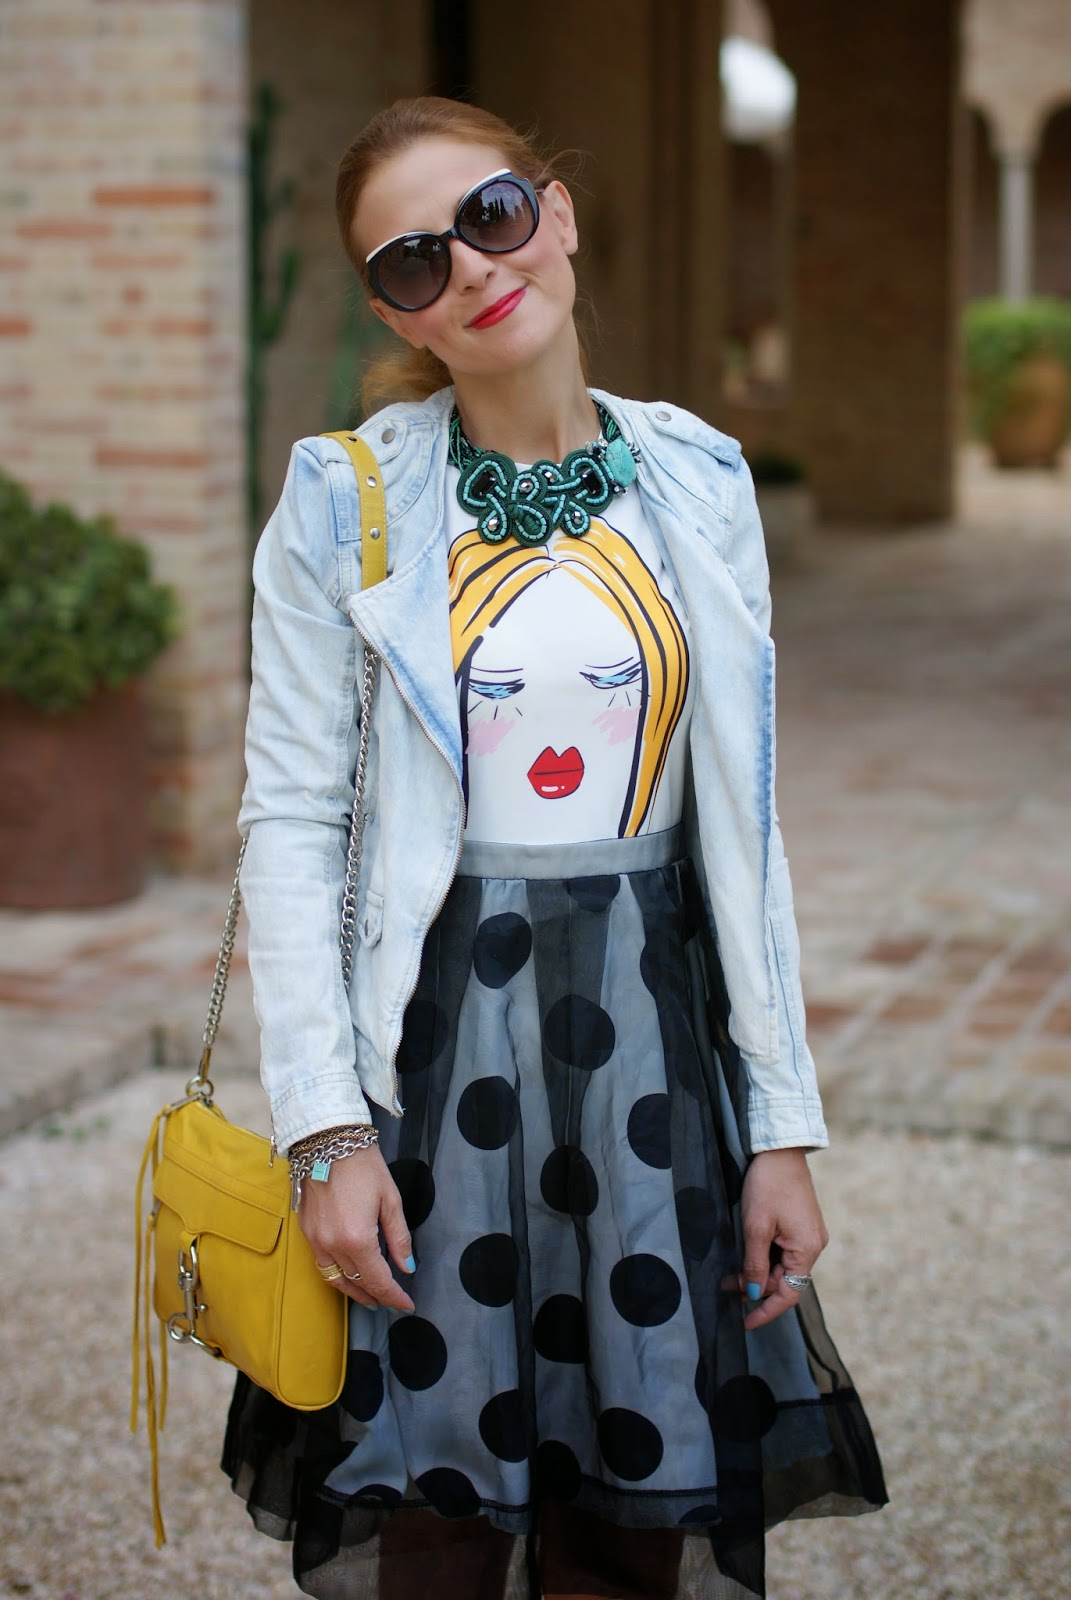 Blackfive lady head dress, Sodini necklace, Rebecca Minkoff mac clutch, Fashion and Cookies, fashion blogger